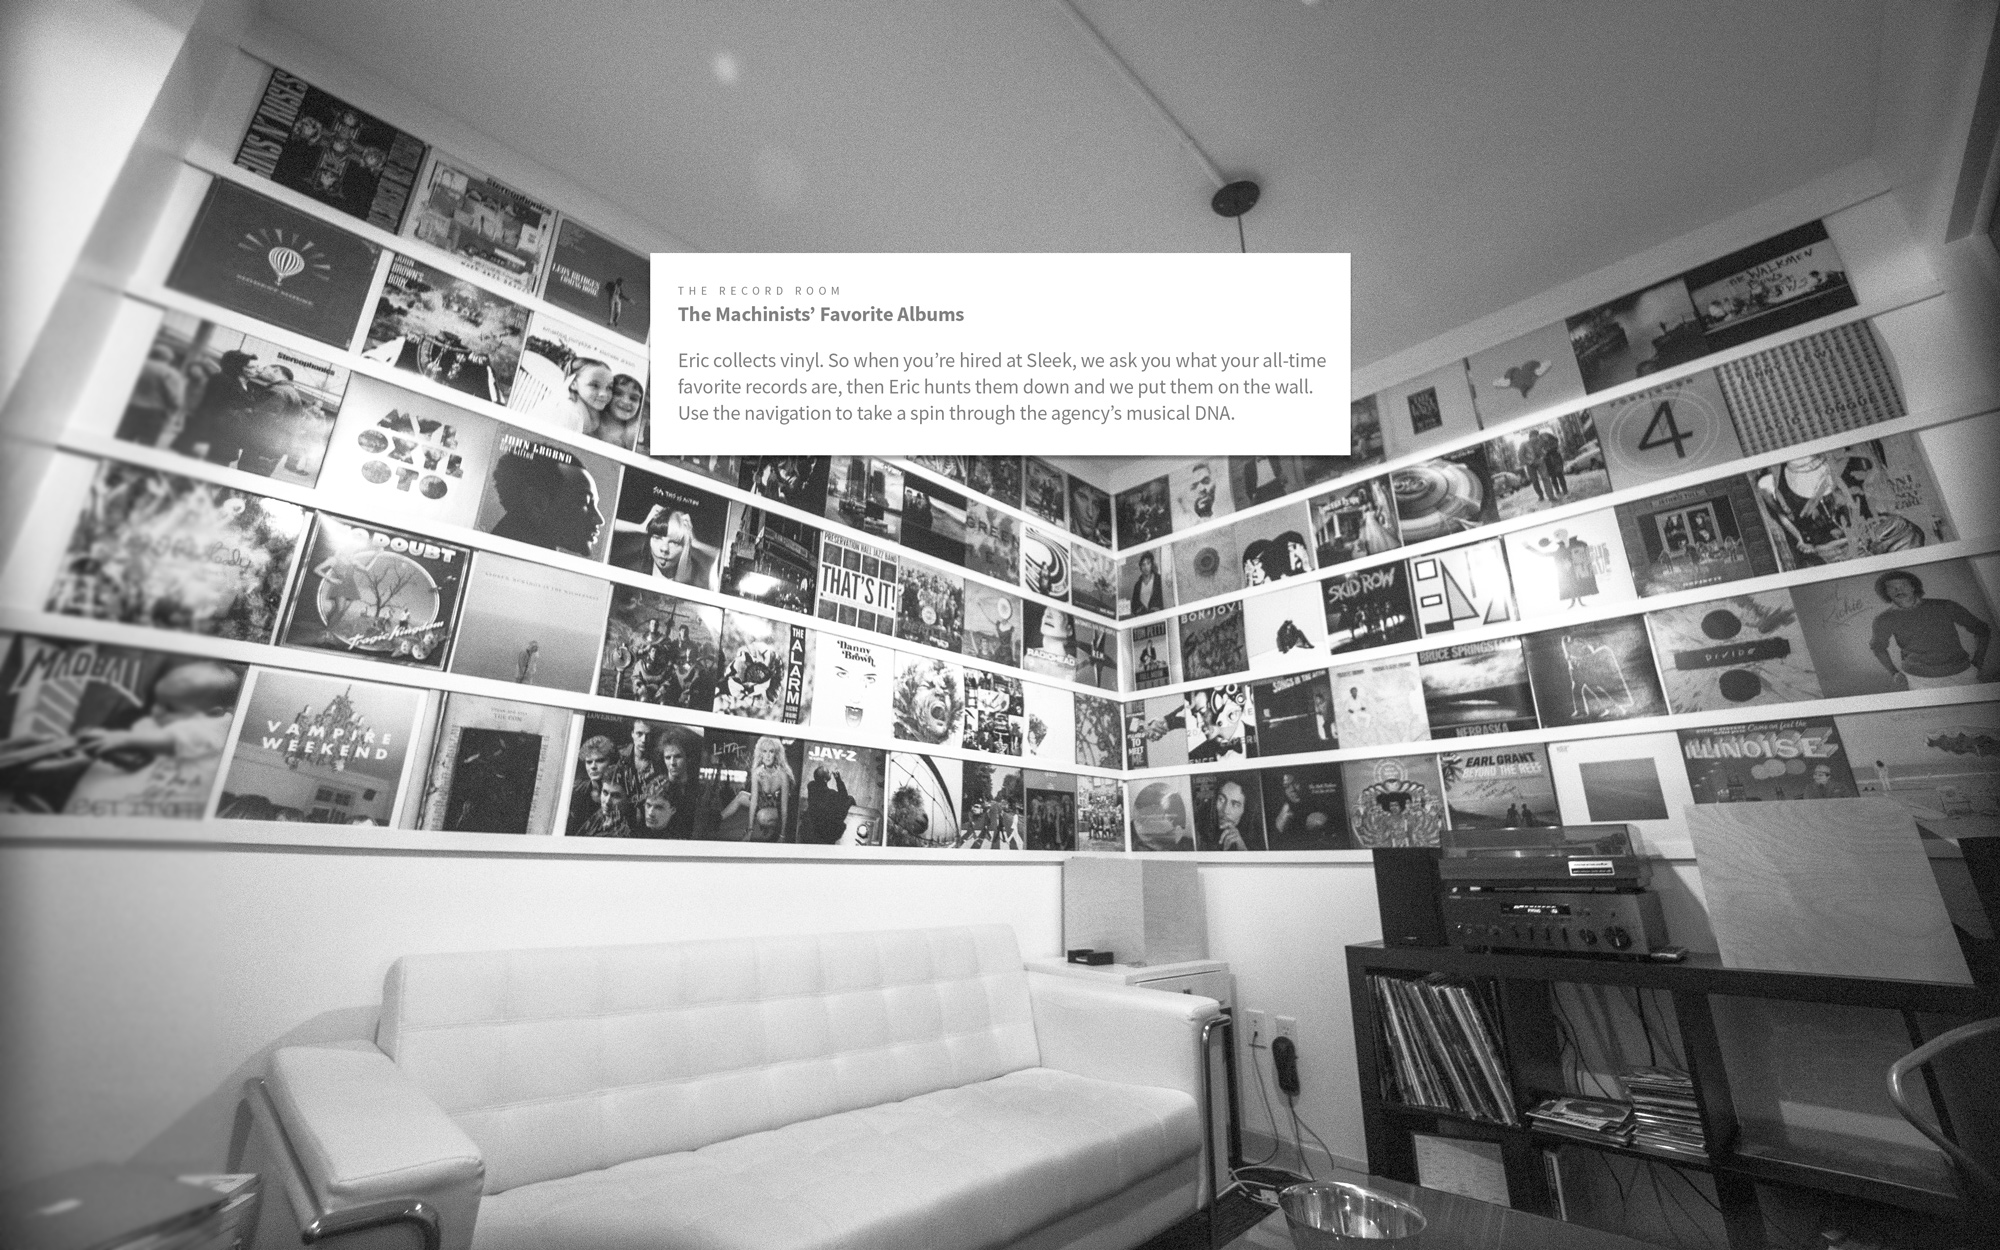 The Record Room at Sleek Machine - A Virtual Snapshot of Every Employees Favorite Music